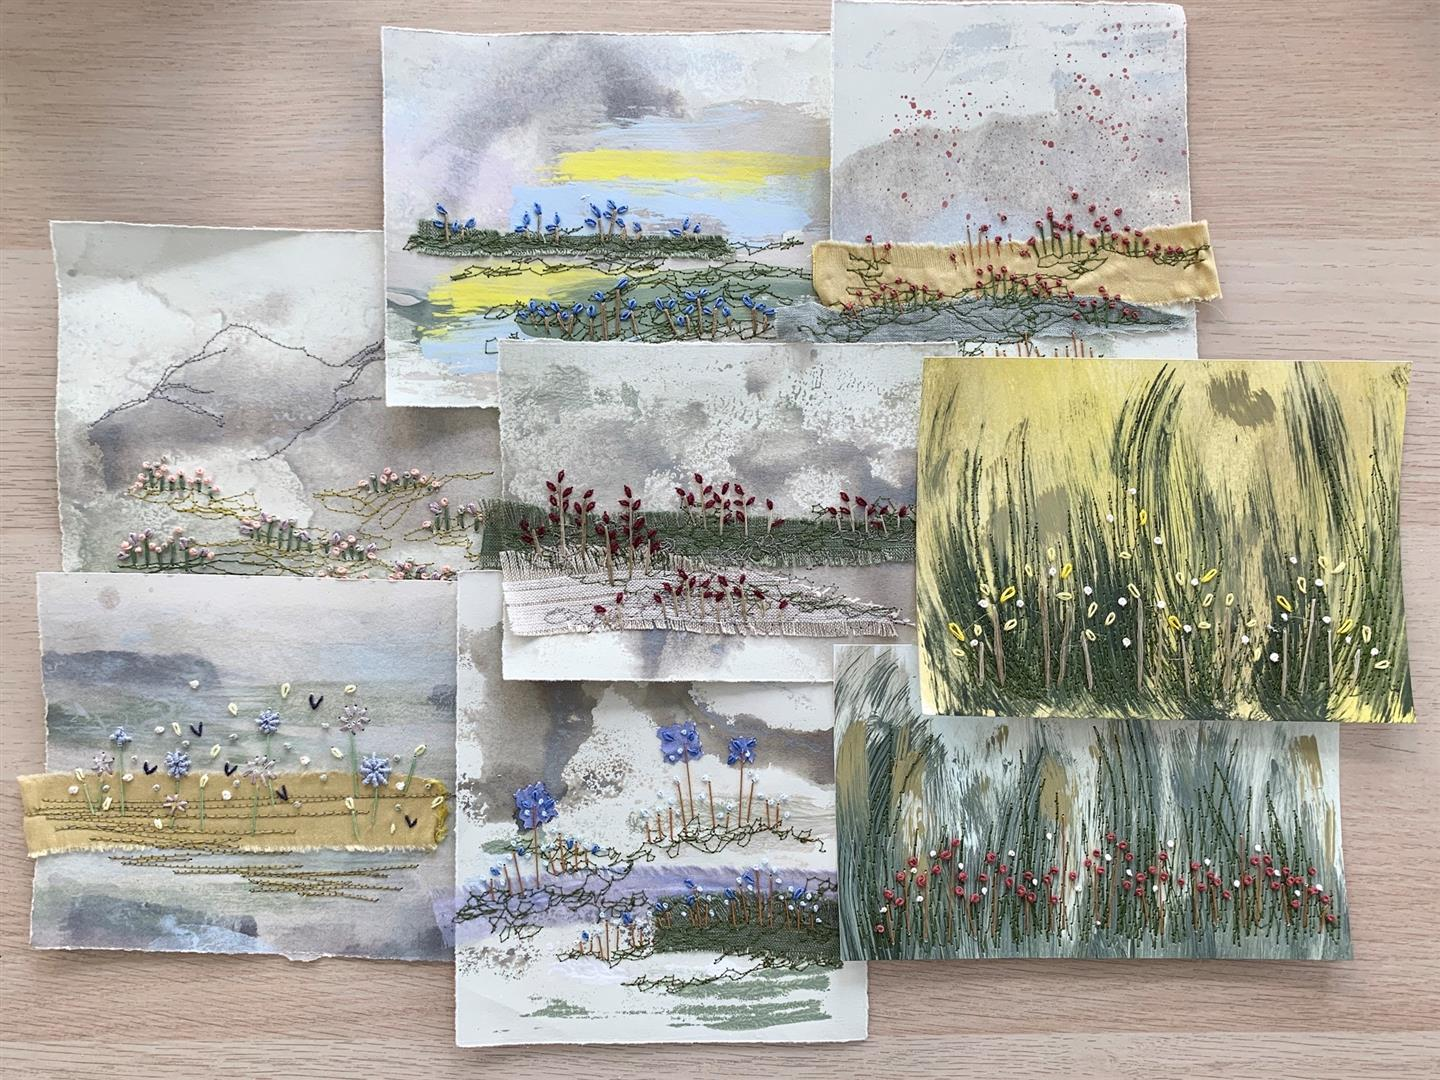 TEXTILE LANDSCAPES - Fully booked